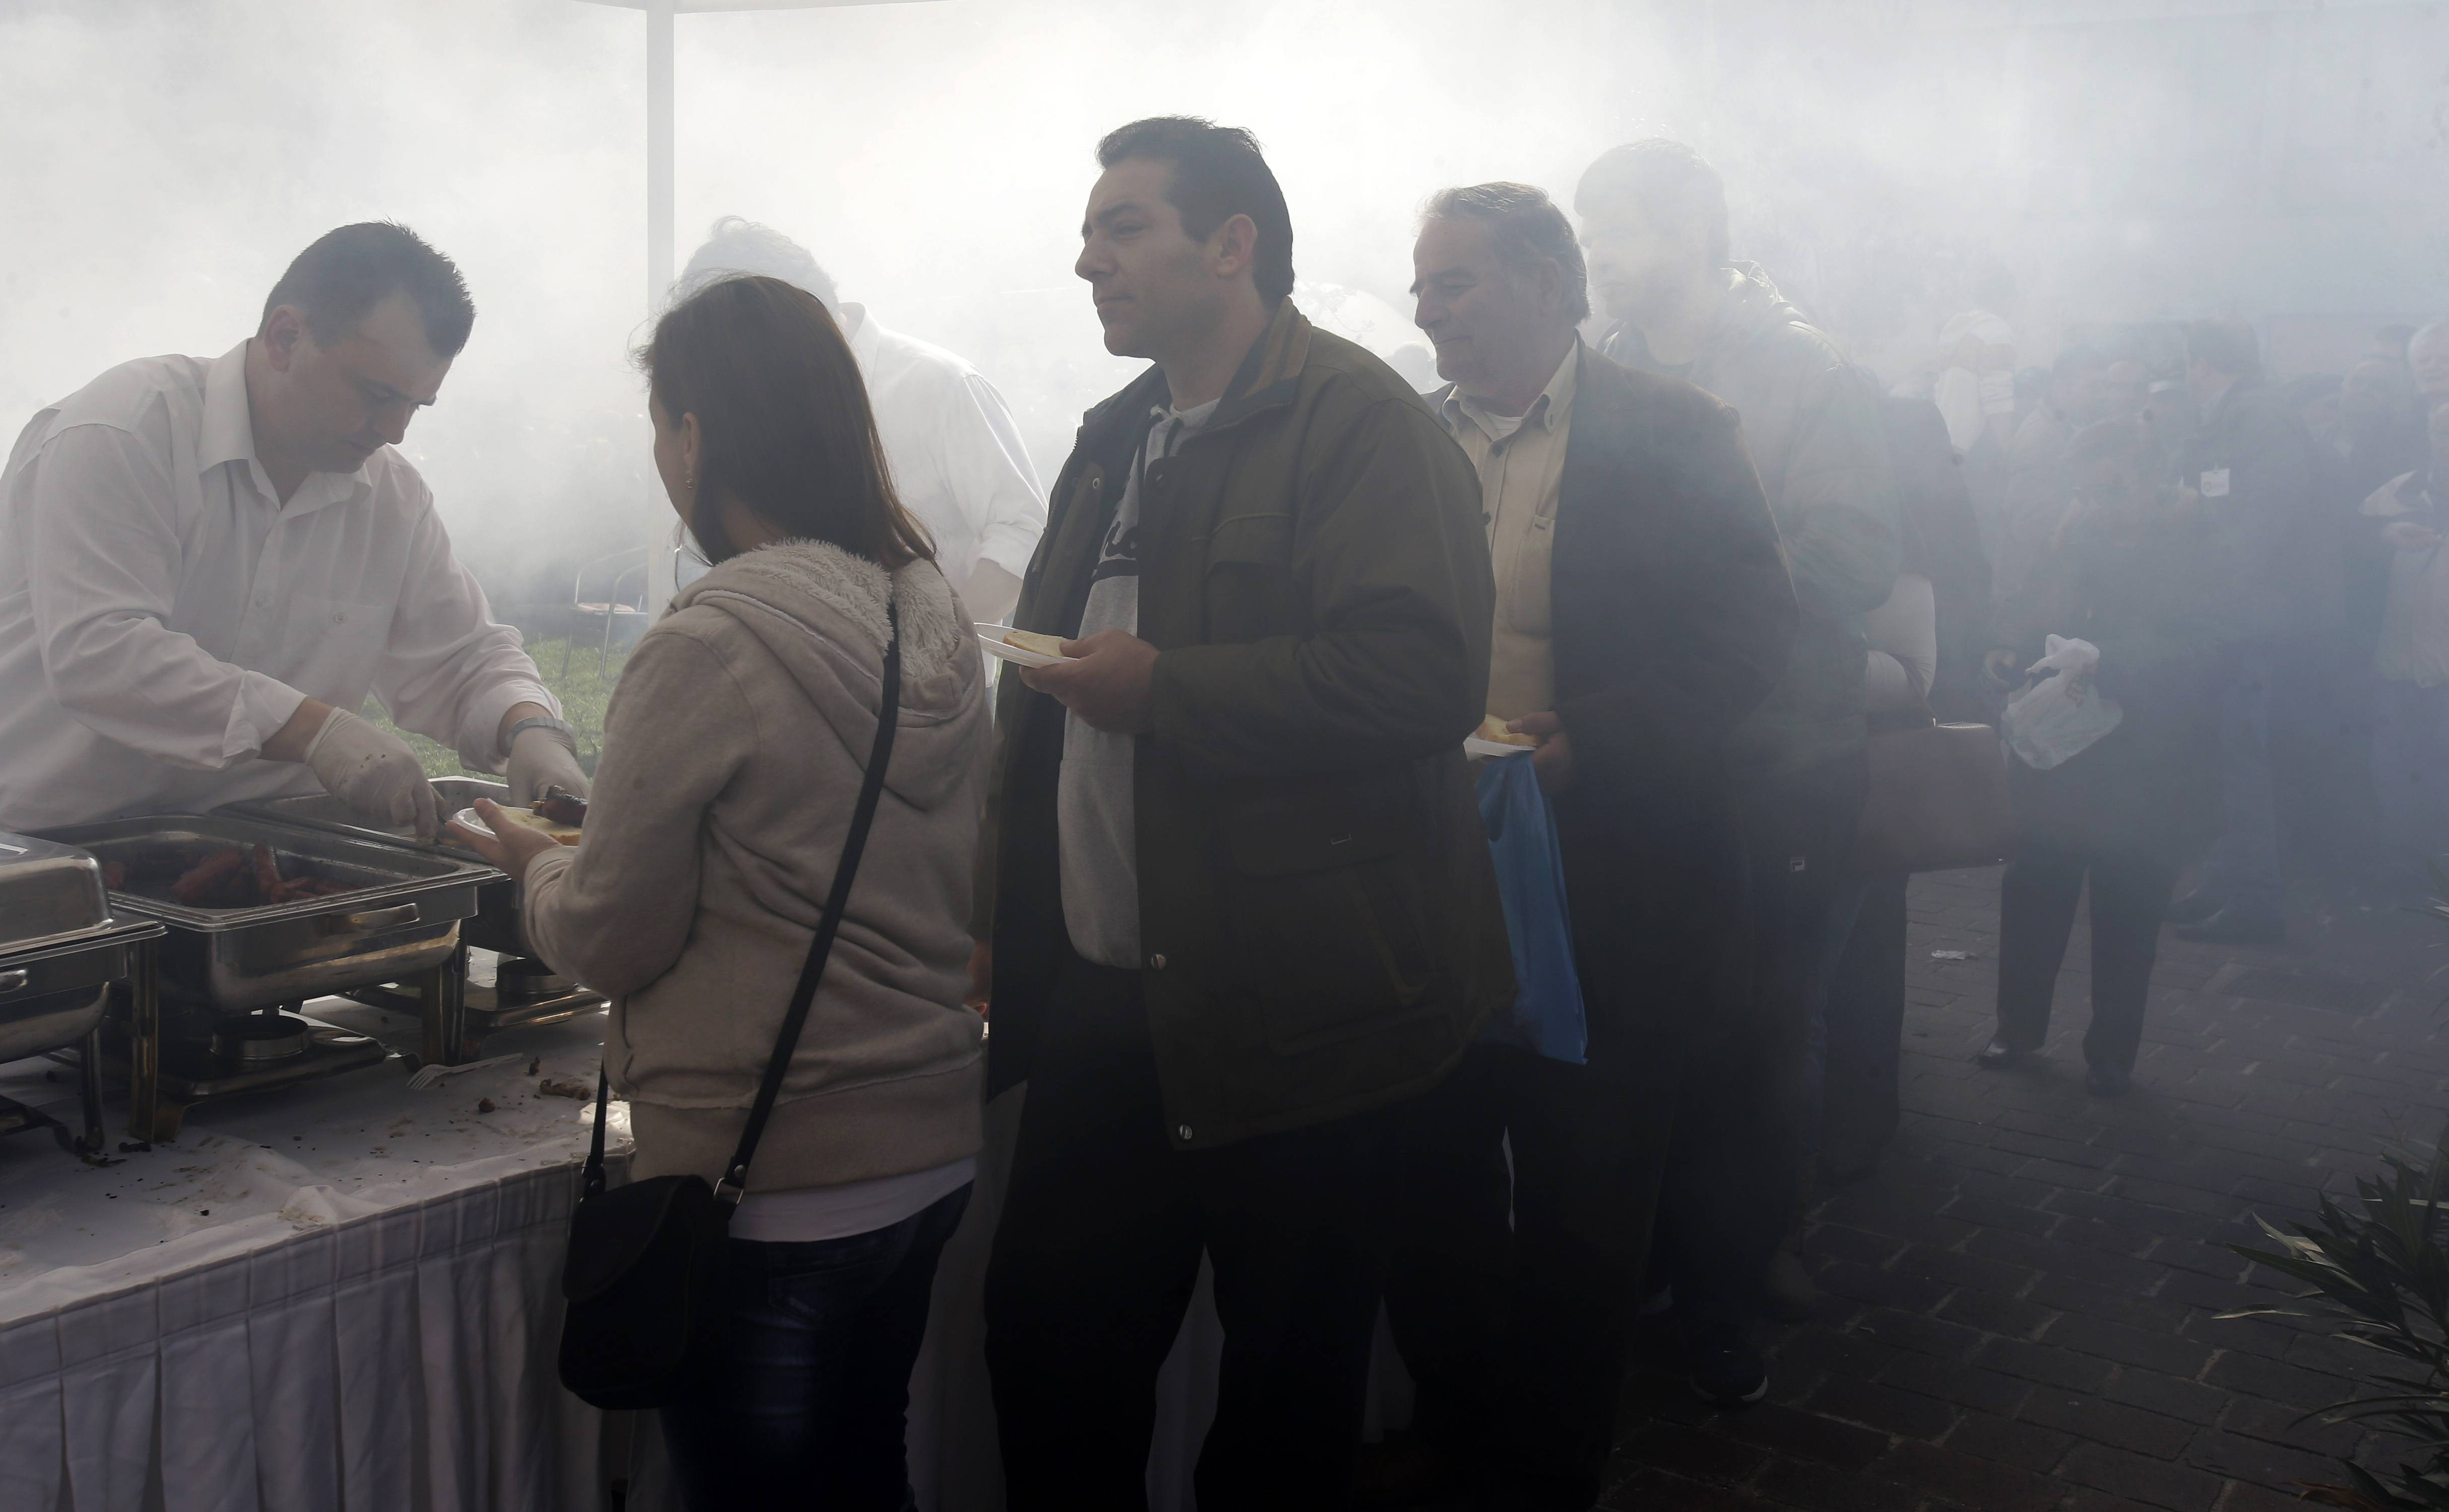 "Hundreds of Athenians queue for free meat at the Athens central meat market amid clouds of smoke from grills Thursday. The handouts were organized by meat market traders, as part of the annual celebrations for ""Barbecue Thursday"" _ a raucous pre-Easter celebration for meat lovers. But amid Greece's acute recession and unemployment, the prospect of free meat has come to attract ever-larger crowds."